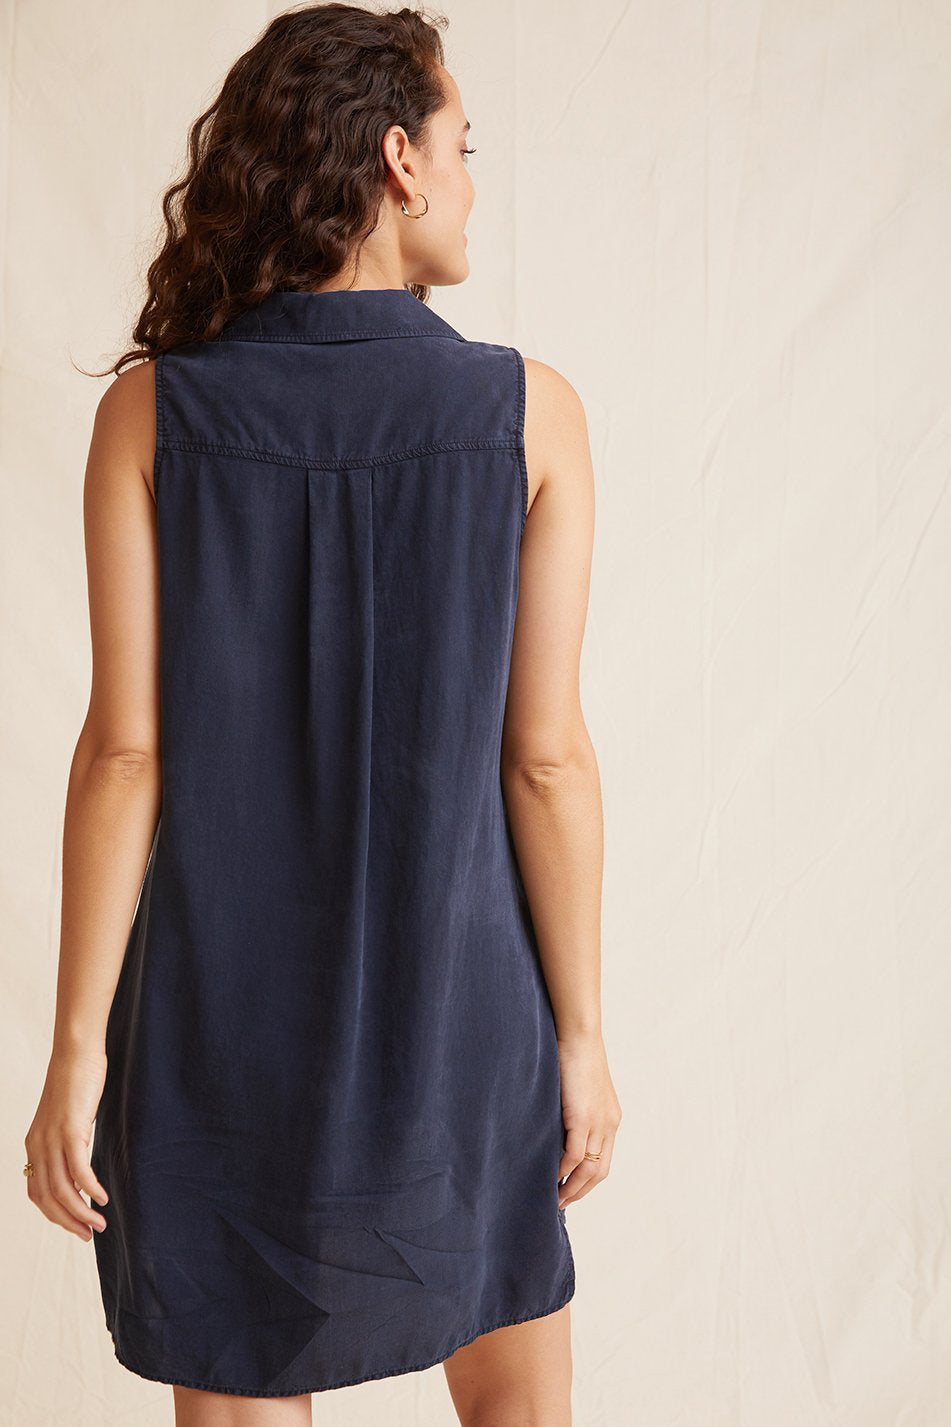 Bella Dahl Sleeveless A-Line Dress Navy